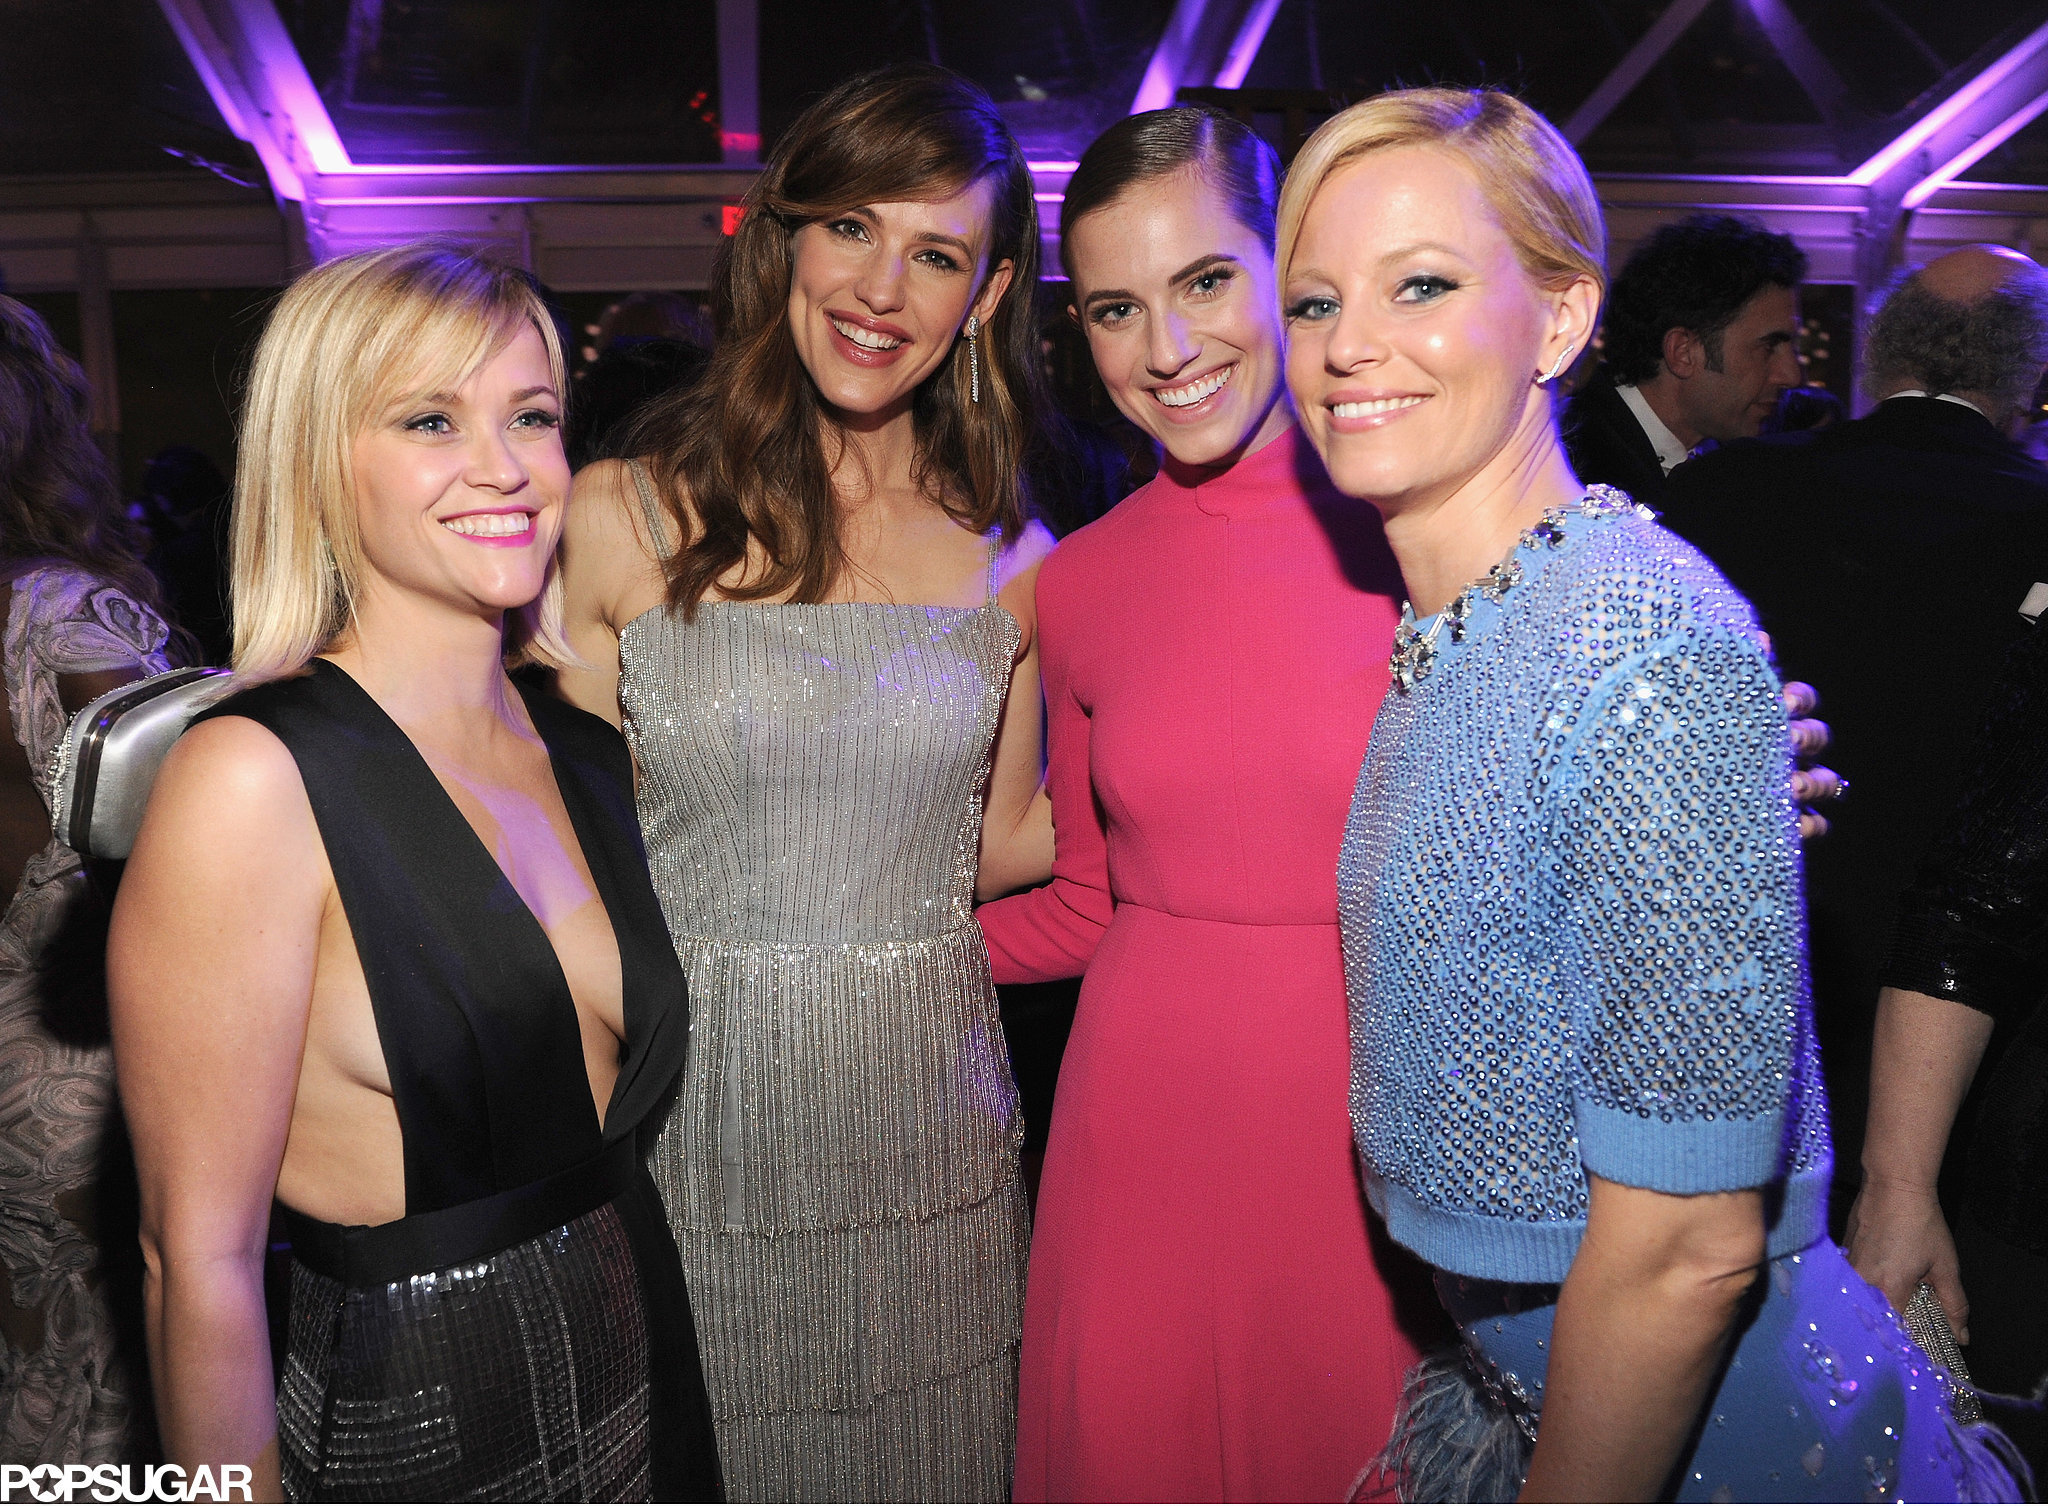 It was ladies' night for Reese Witherspoon, Jennifer Garner, Allison Williams, and Elizabeth Banks at the Vanity Fair afterparty.